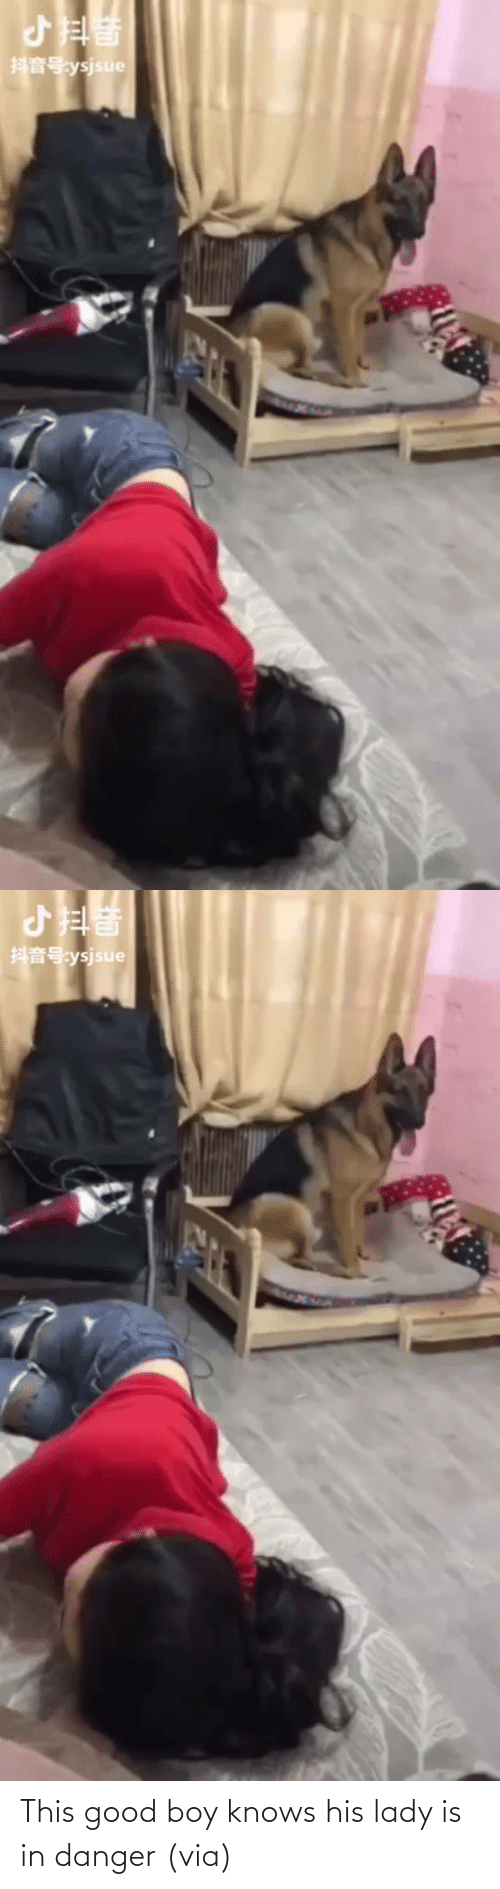 boy: This good boy knows his lady is in danger(via)